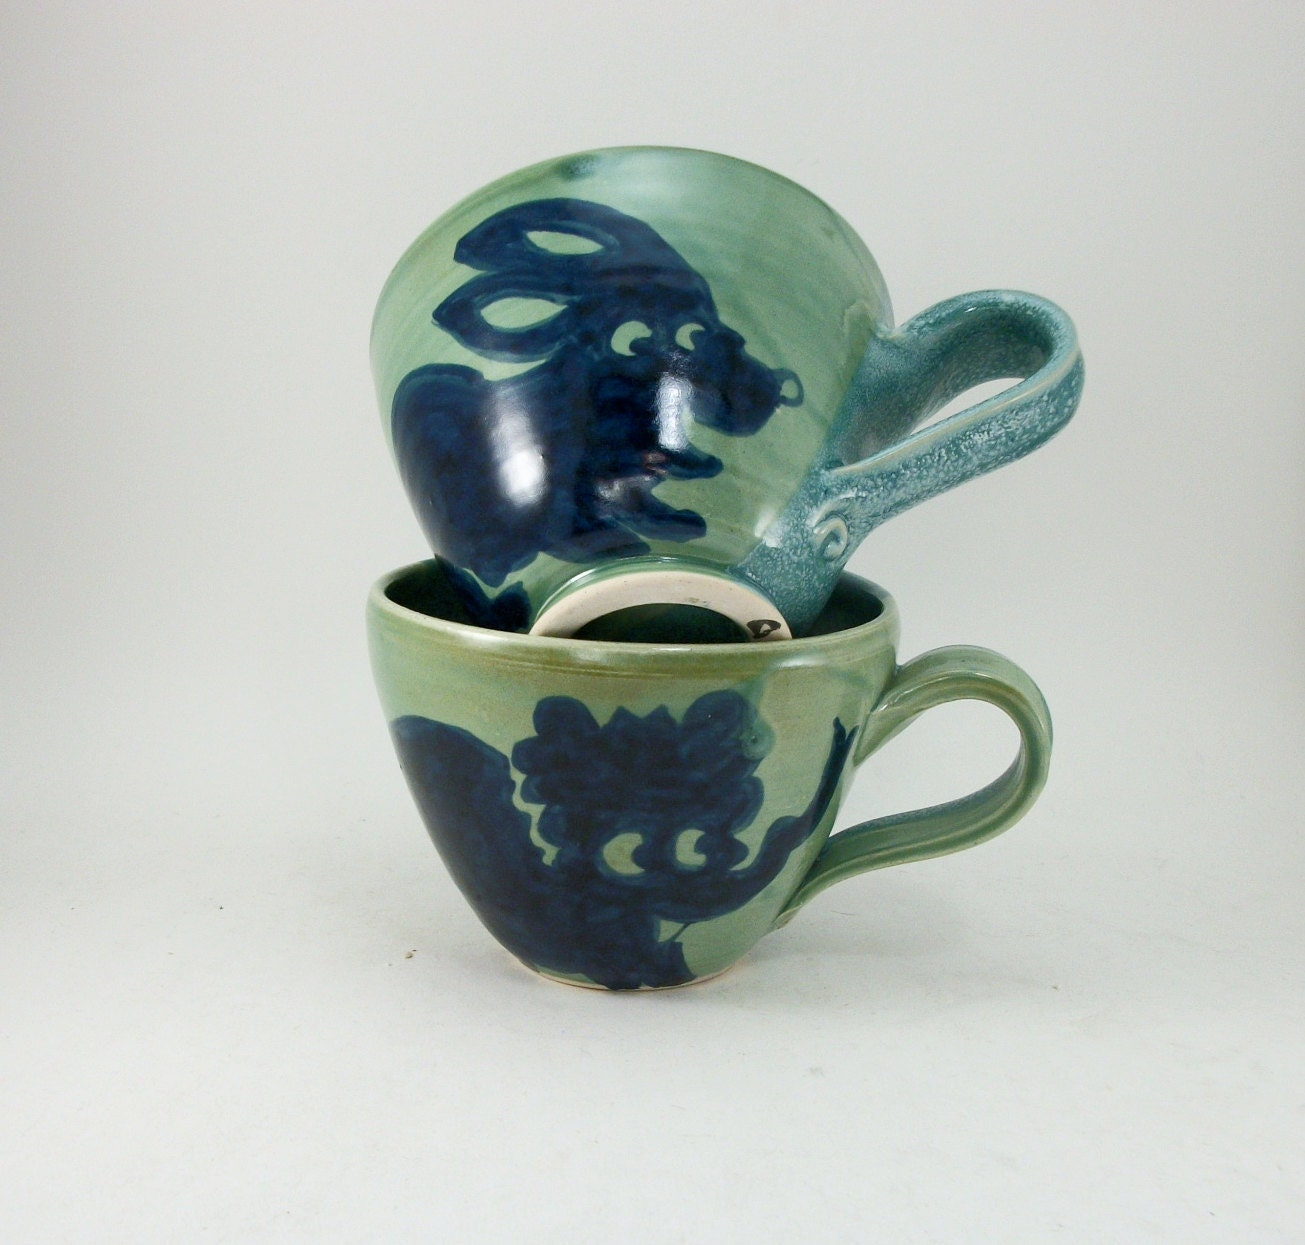 special pair of cups elephant and rabbit together